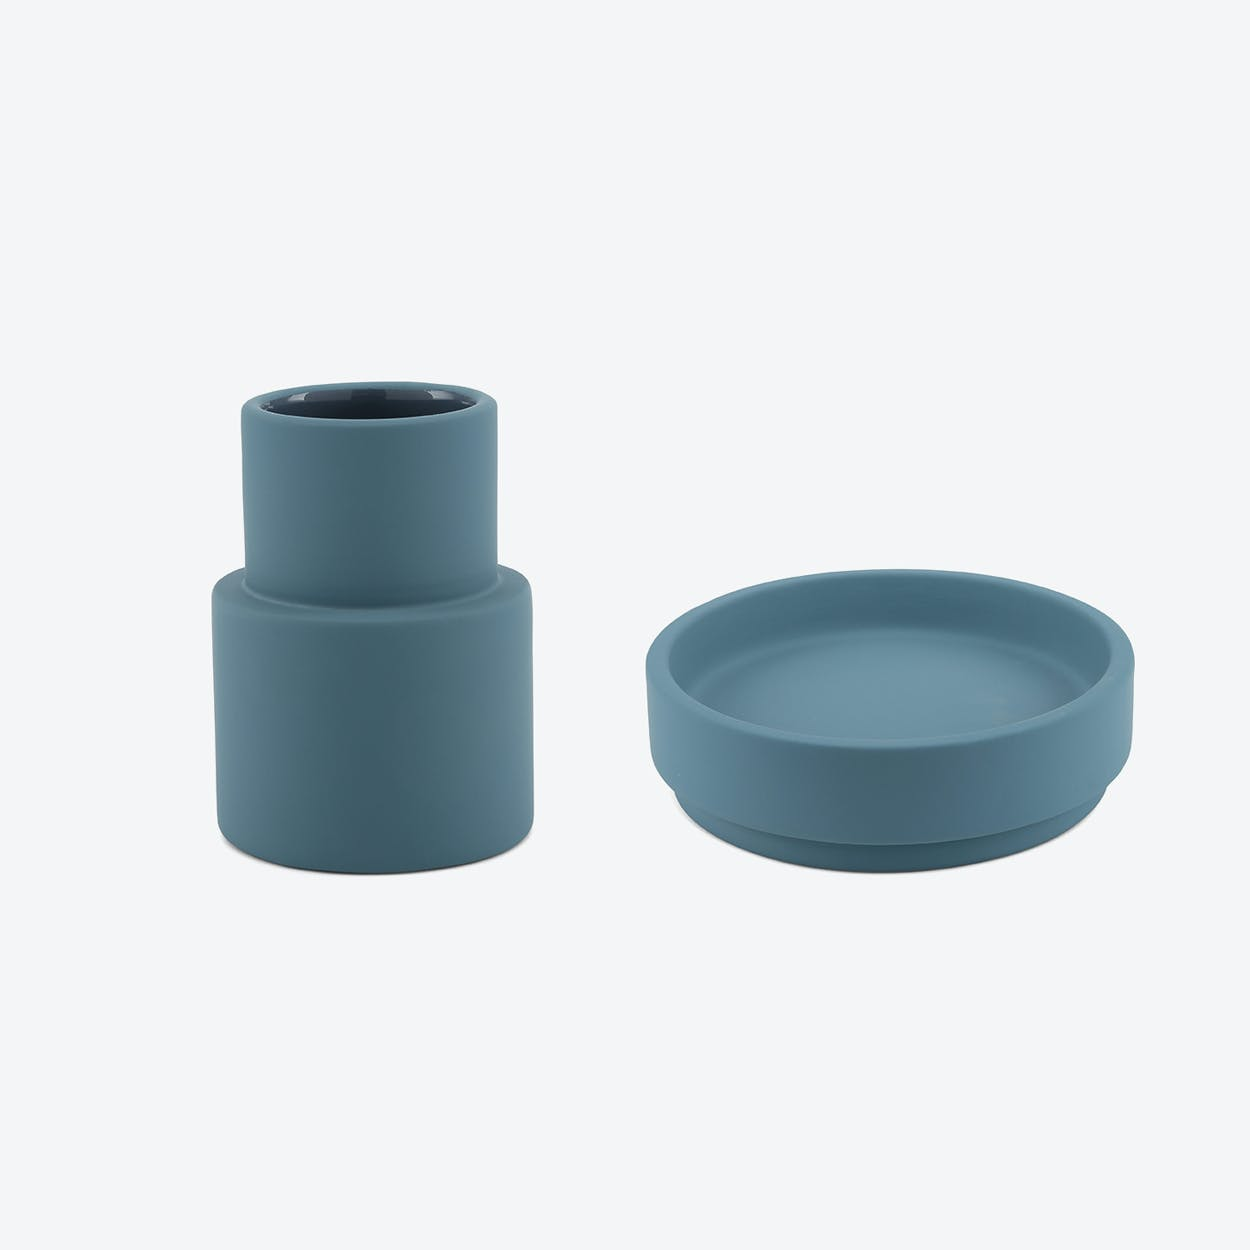 Shades Counter Set, Model A in Blue